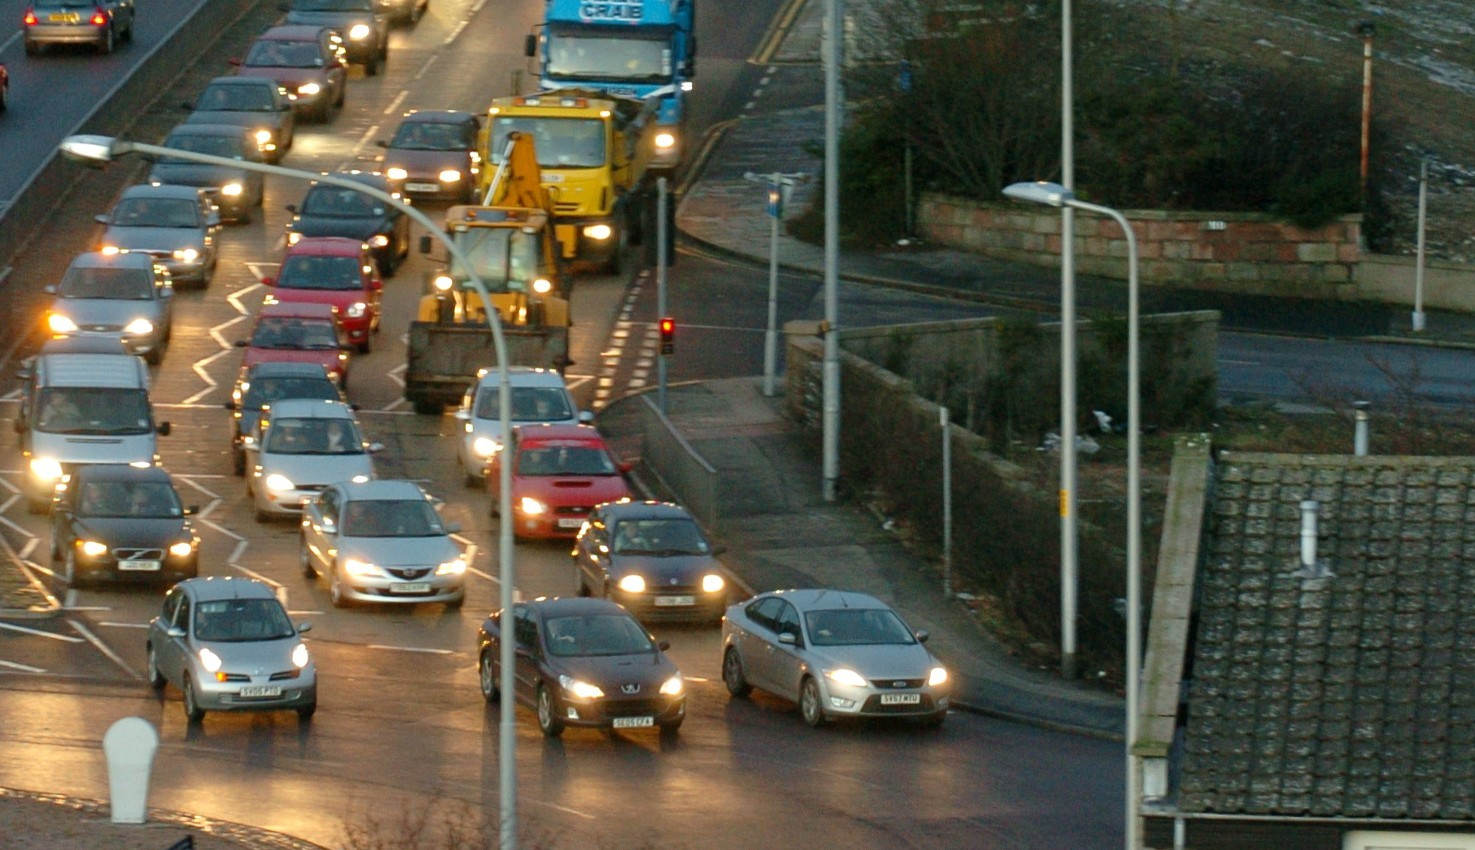 The scheme aims to improve traffic flow at the Haudagain.